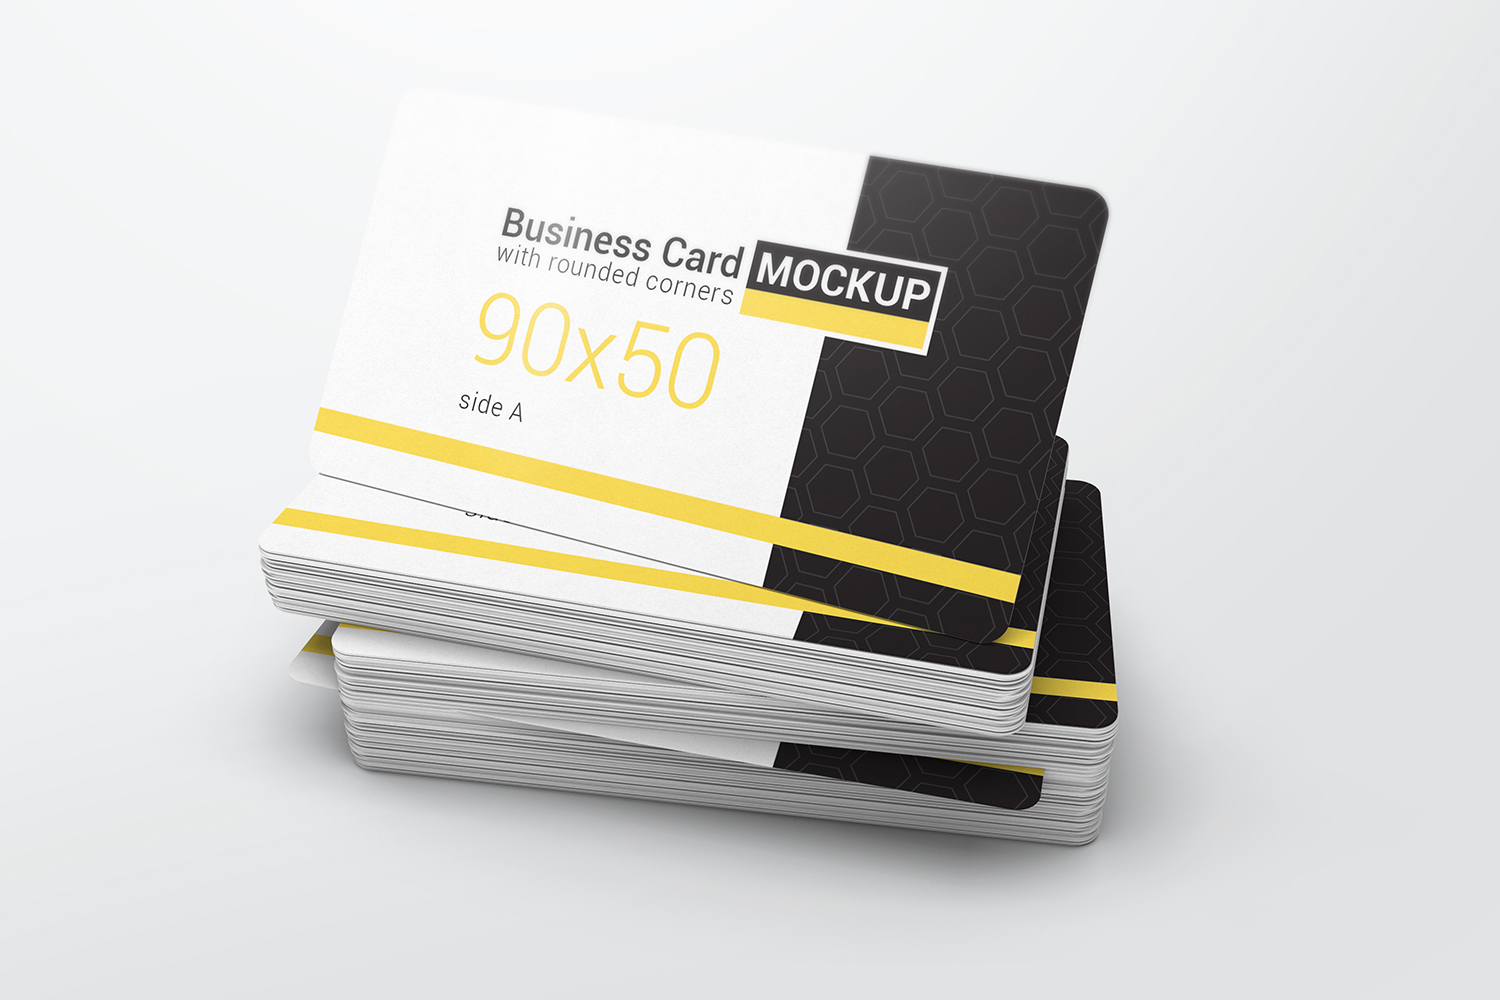 Business Card With Rounded Corners Mockups example image 3